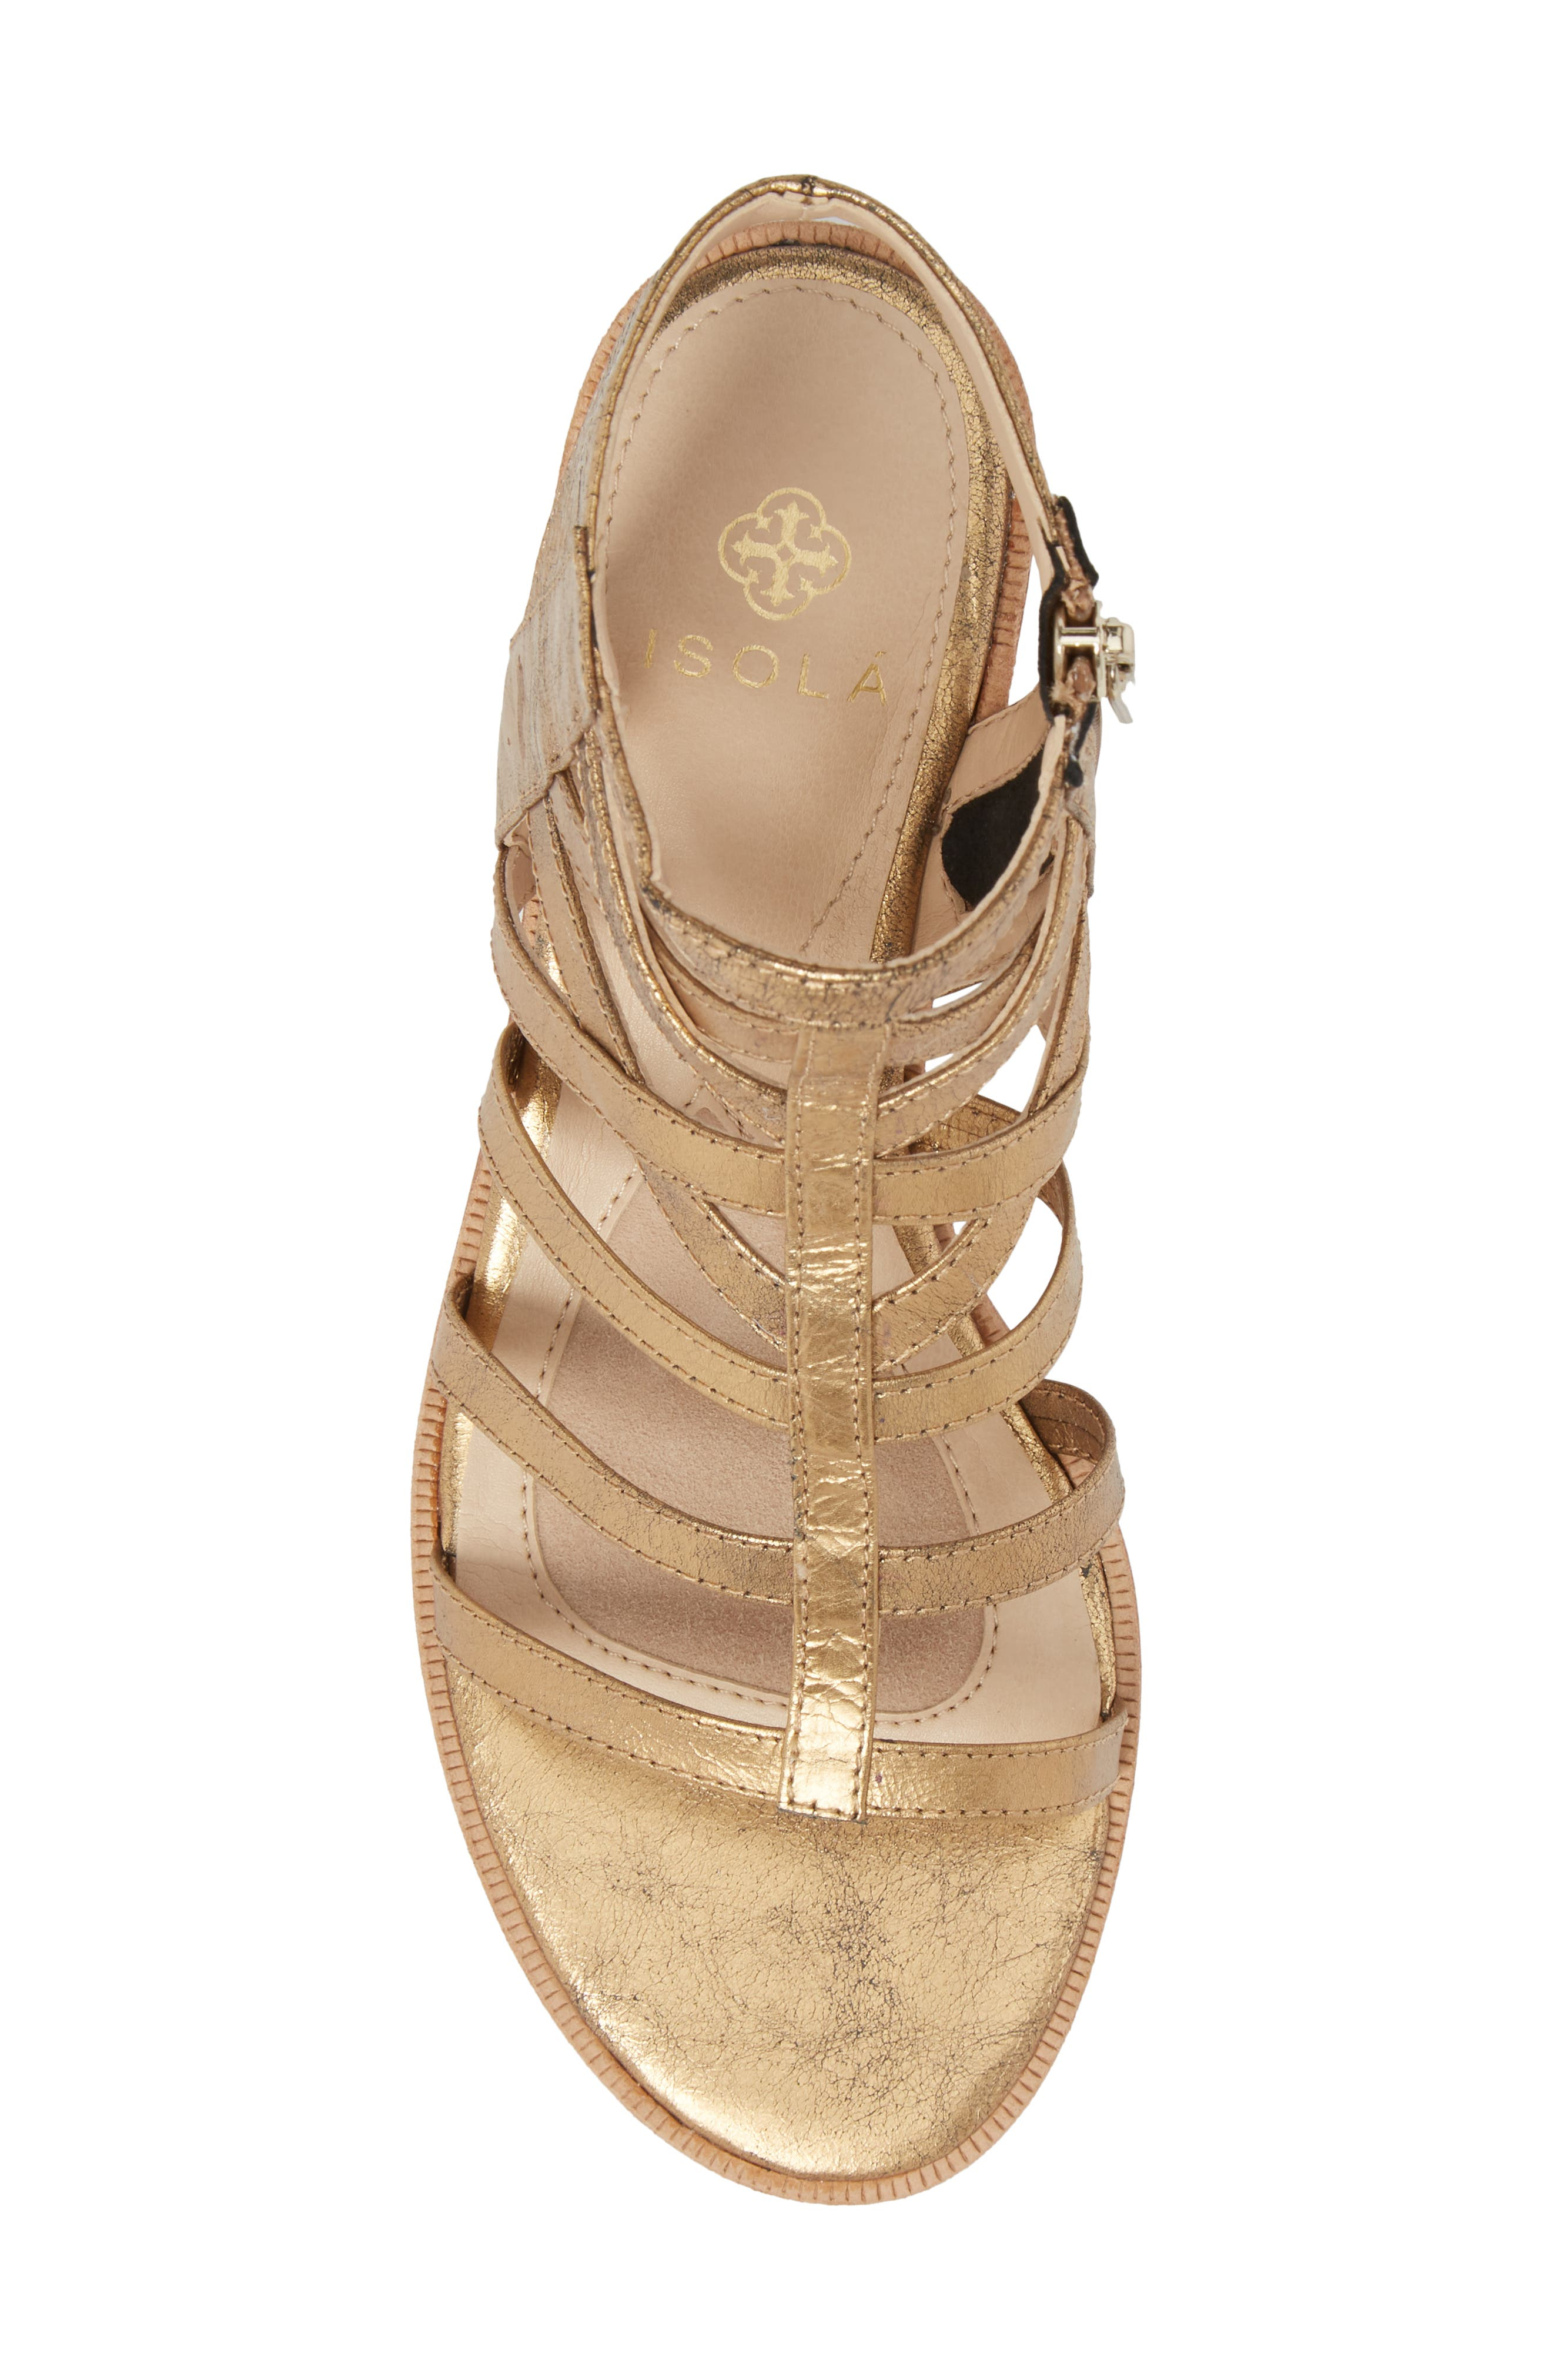 Genesis Cage Sandal,                             Alternate thumbnail 5, color,                             Old Gold Leather